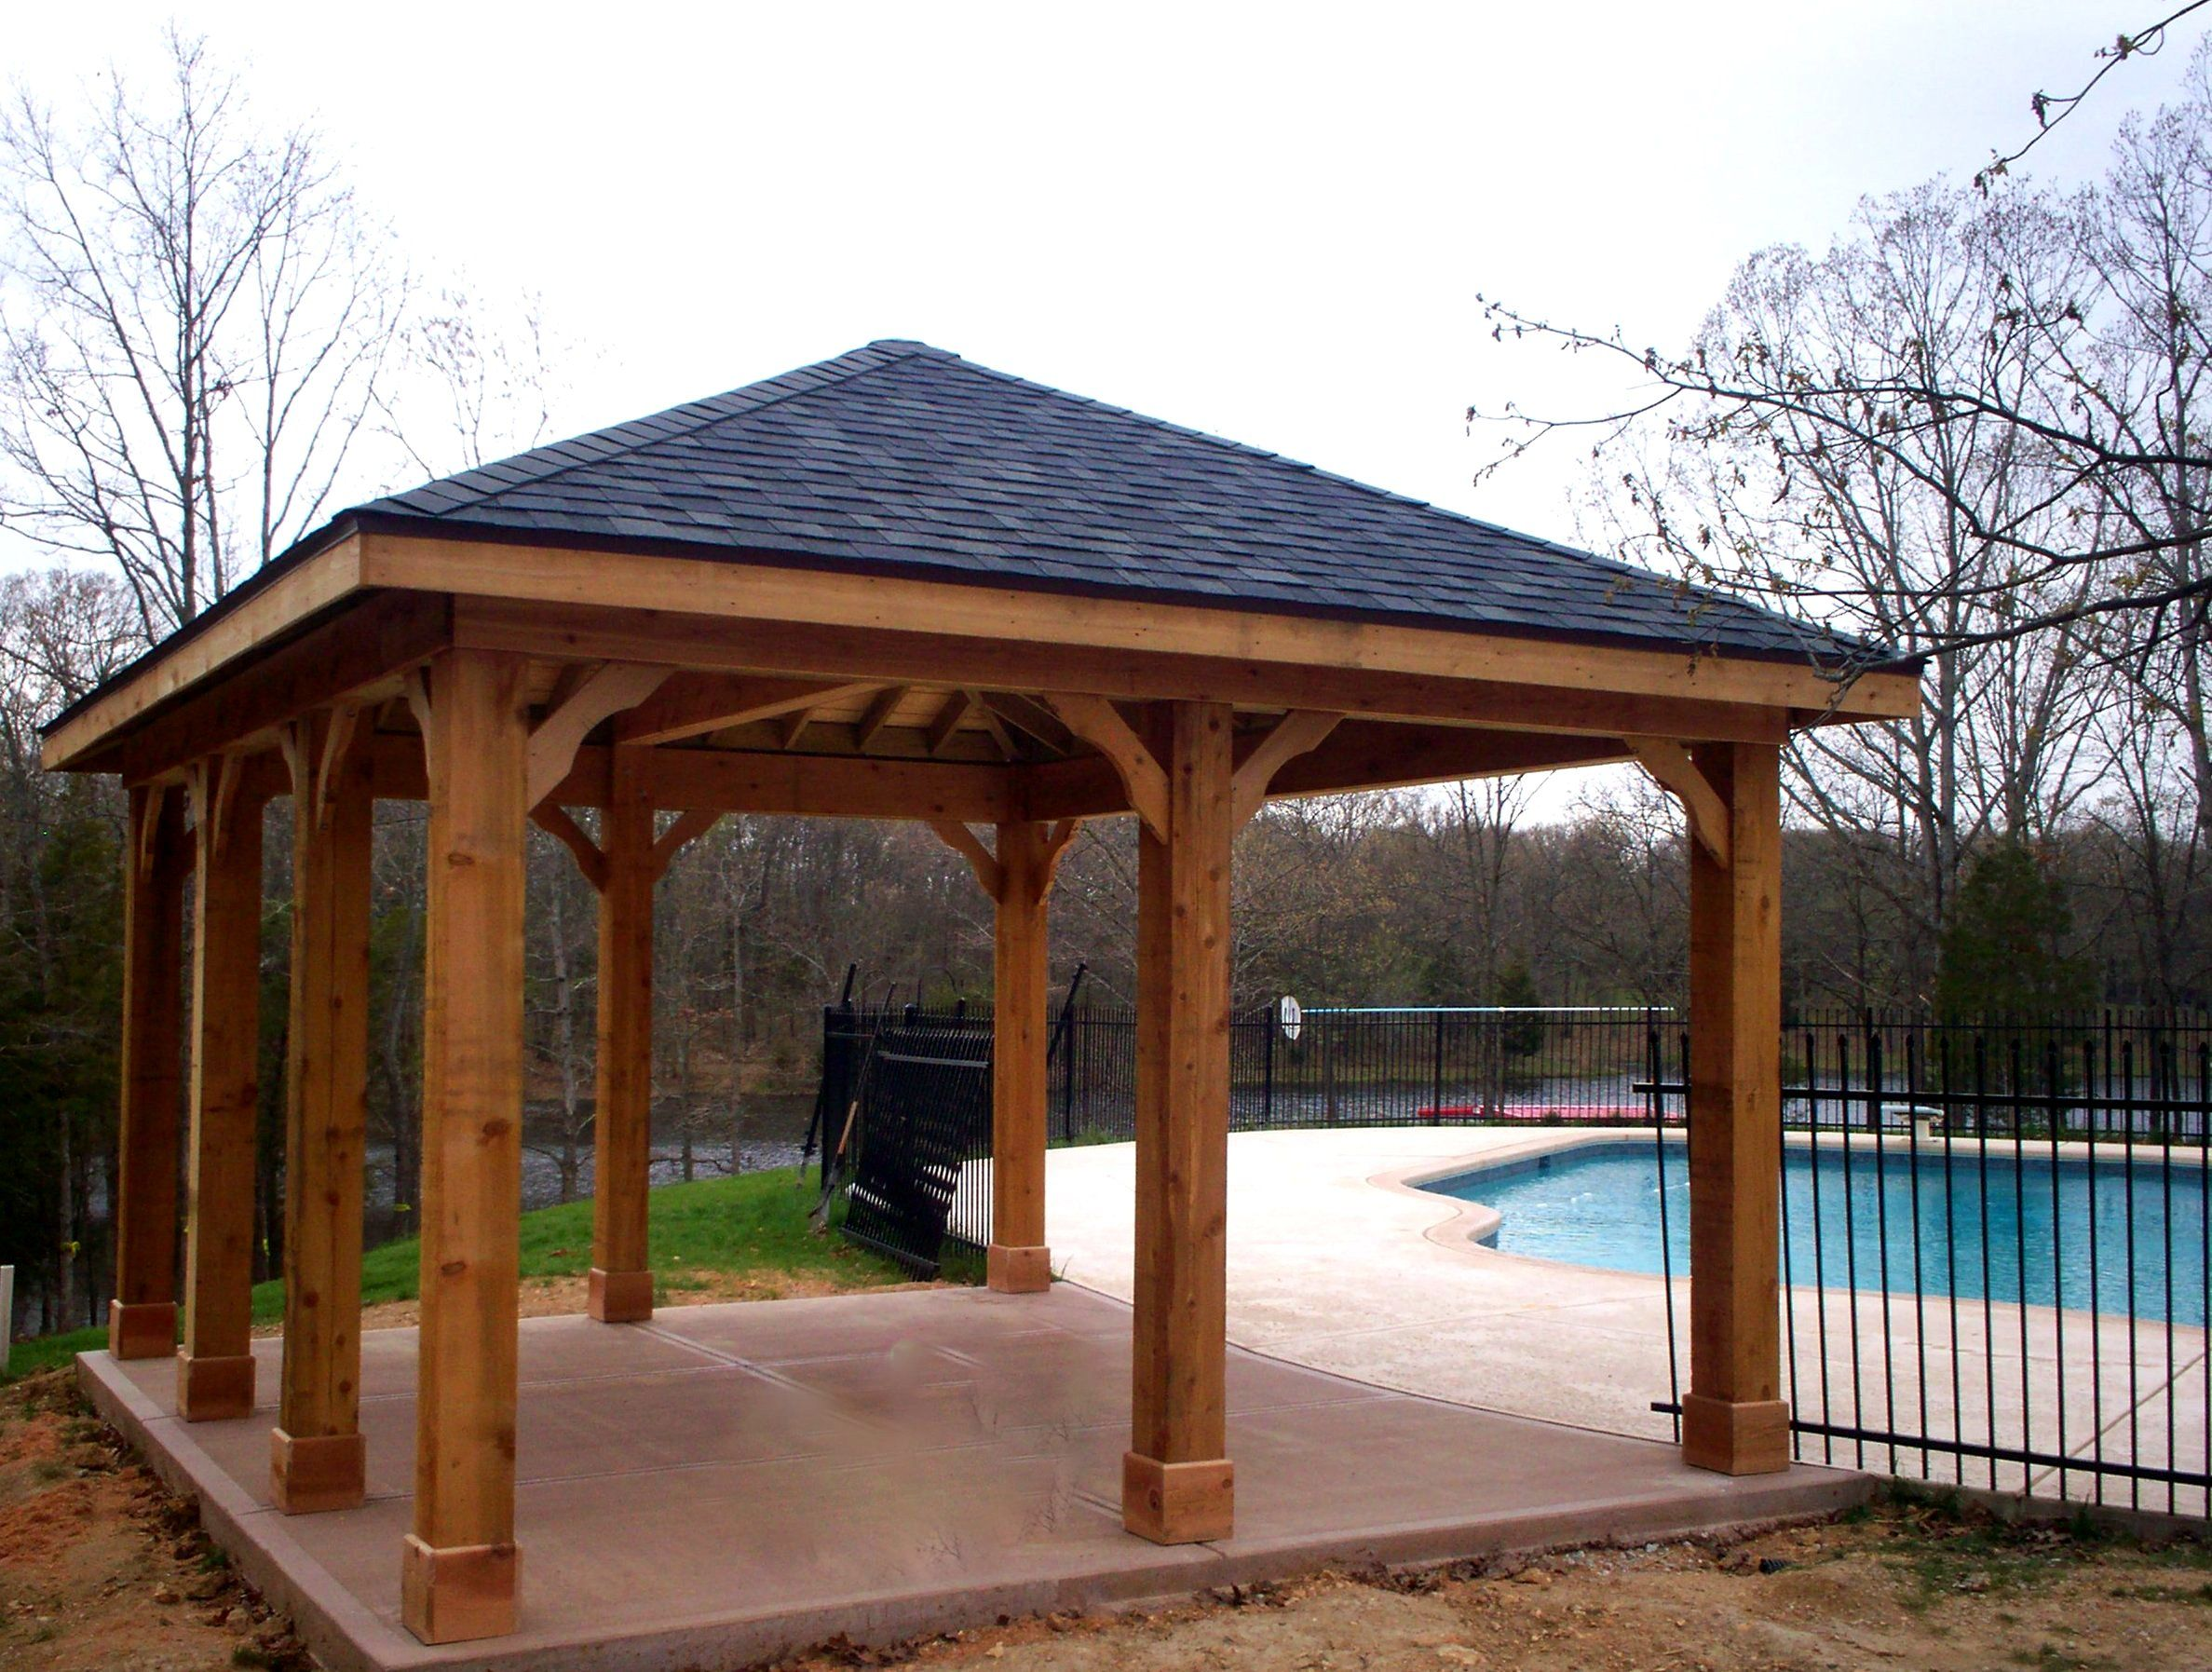 Patio Covers For Shade And Style Covered Patio Design Definitions And Patios